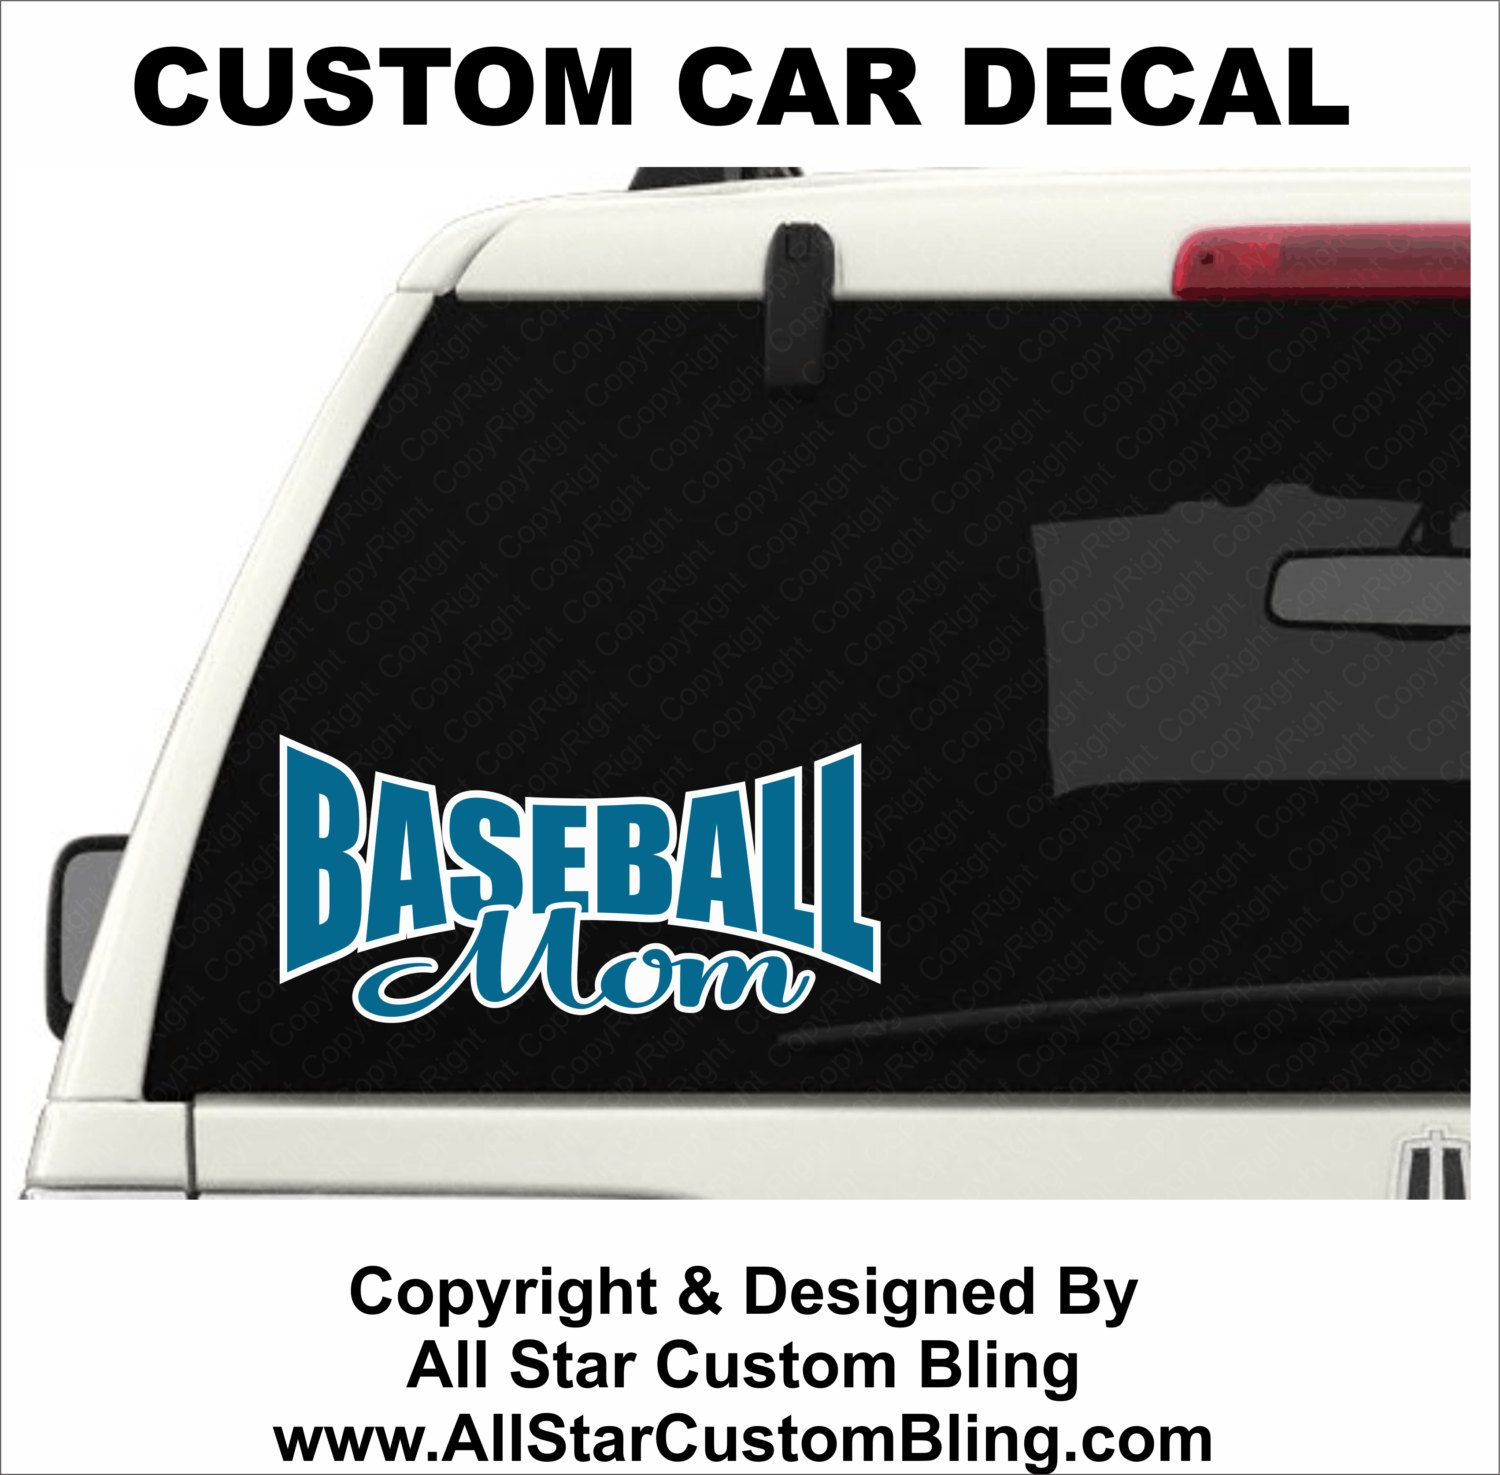 Custom Baseball Mom Car Decal Custom Baseball Car Decal Baseball - Custom car decals baseball